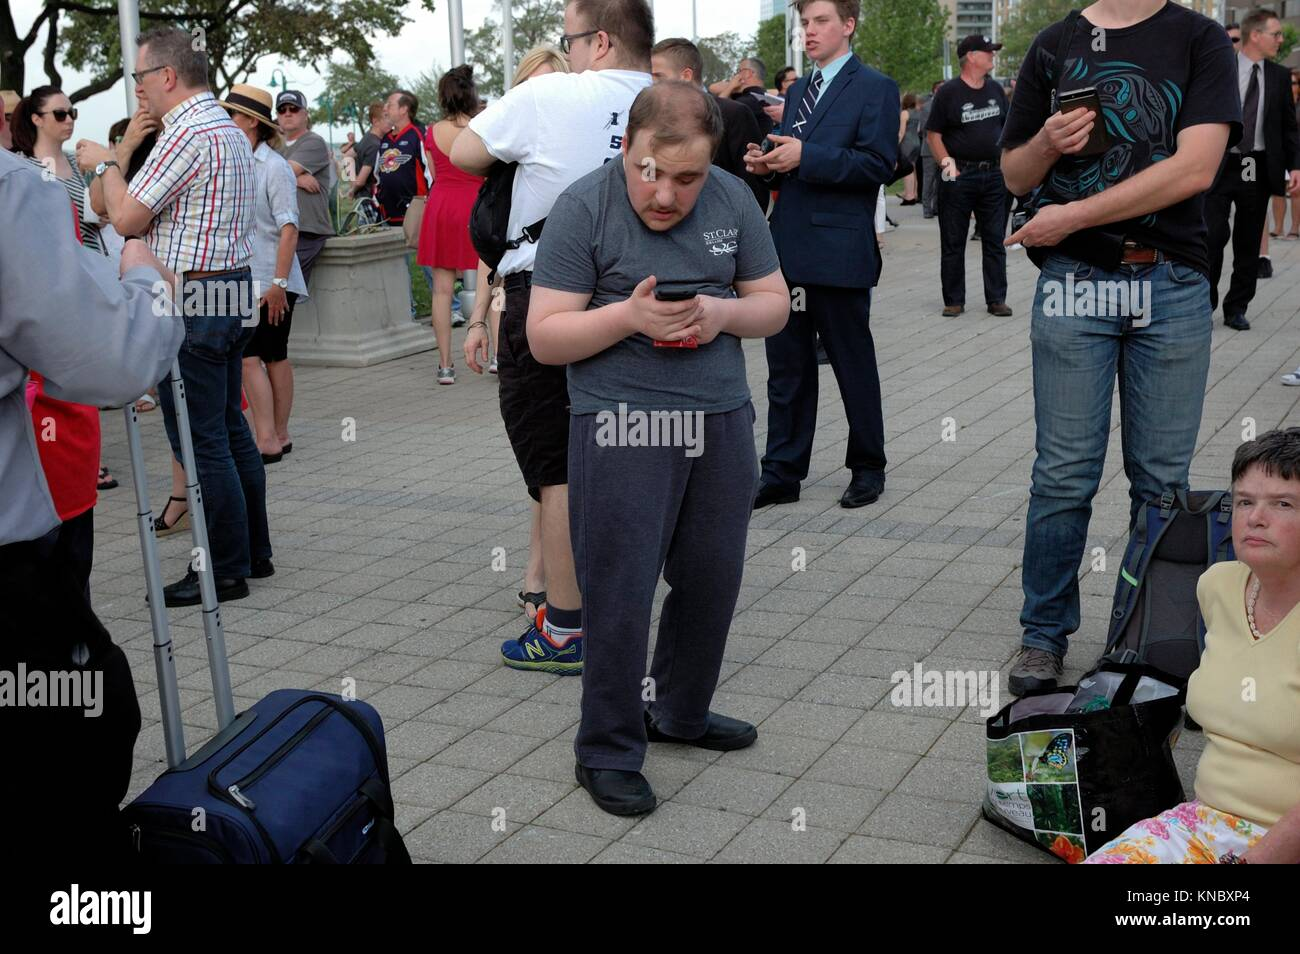 A man bends over to look at his smartphone while a crowd of people wait for the start of a ceremony involving hockey - Stock Image